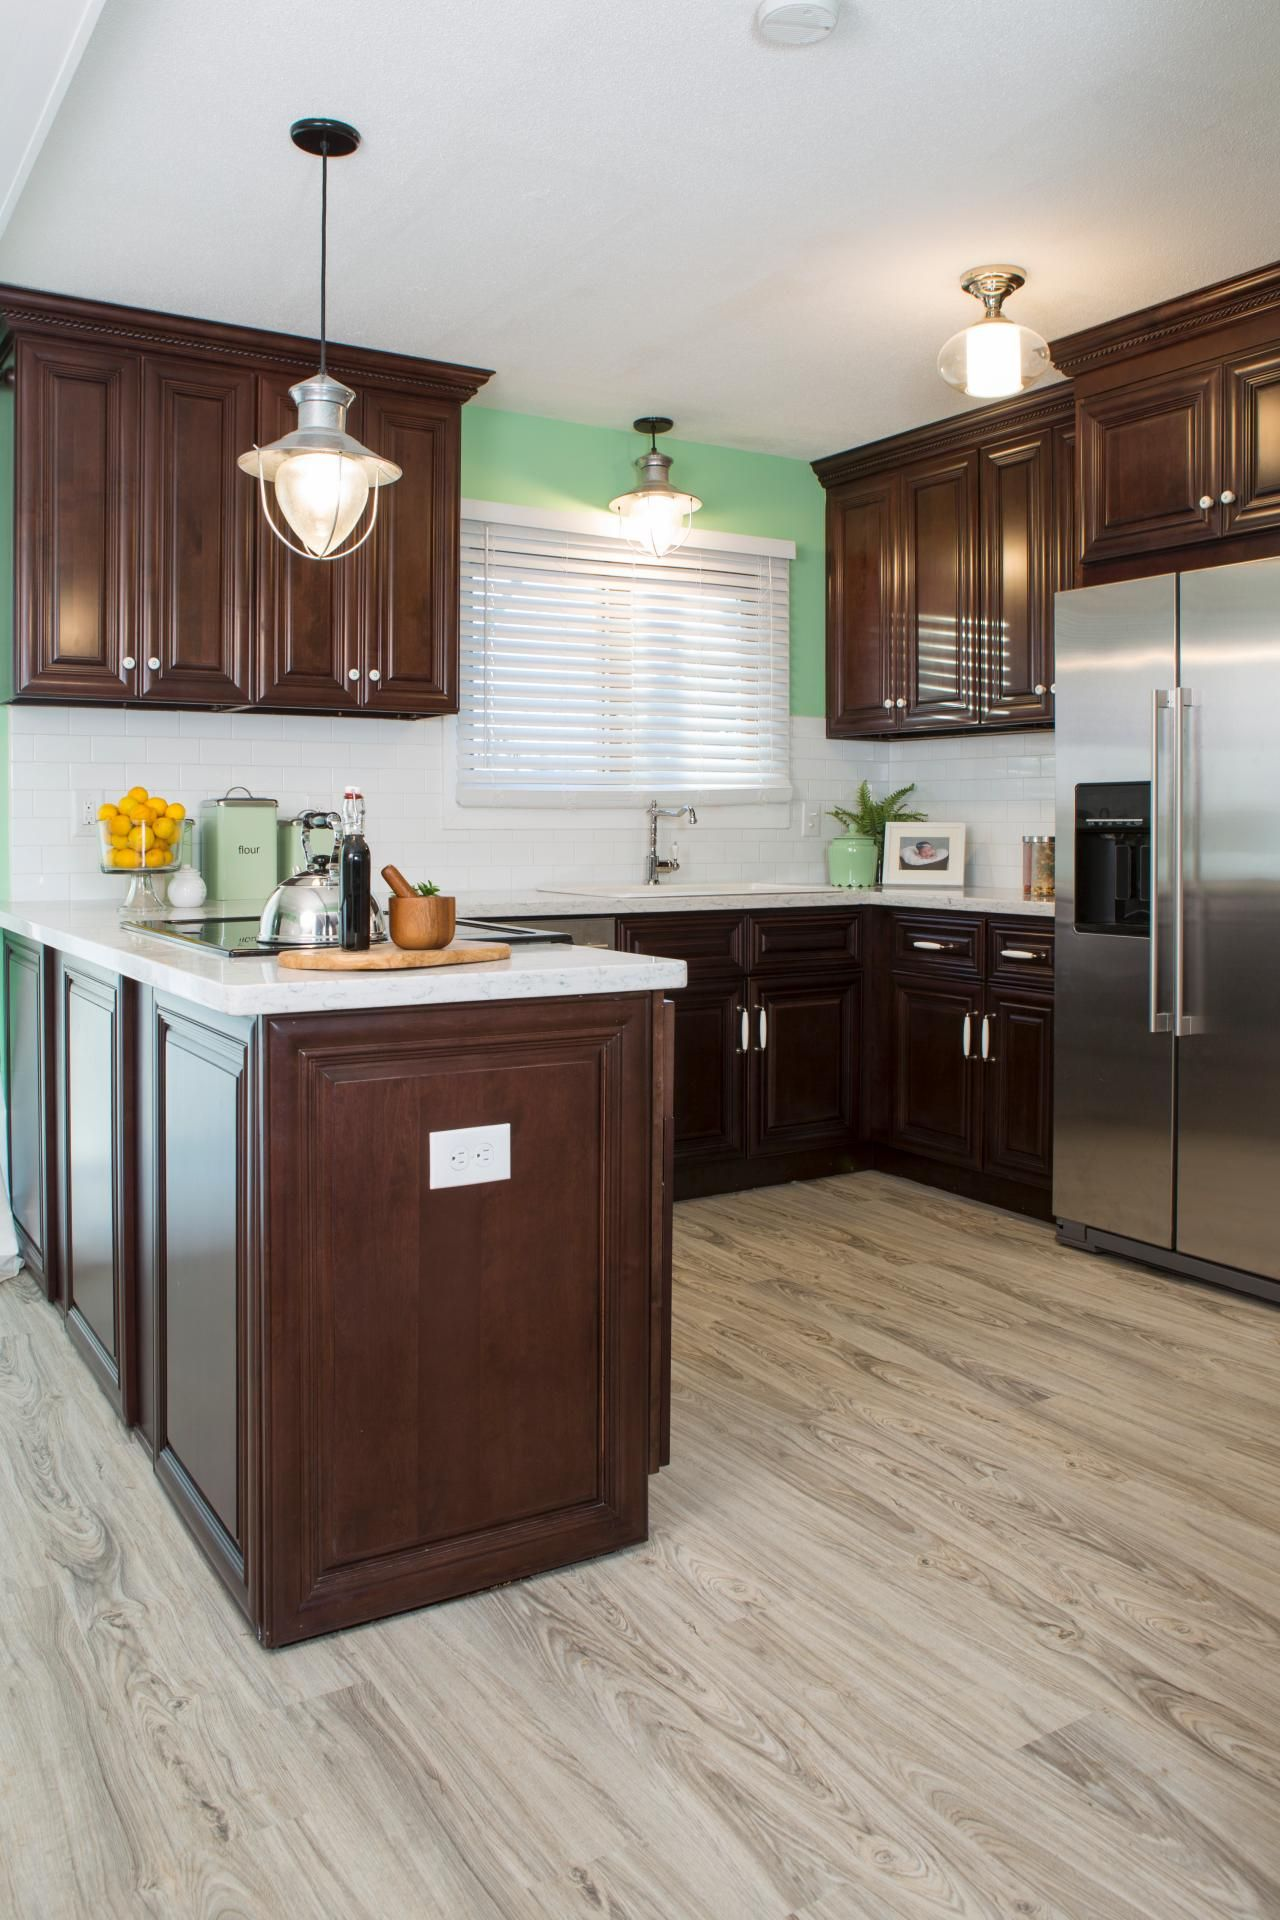 Image result for living room kitchen open concept with